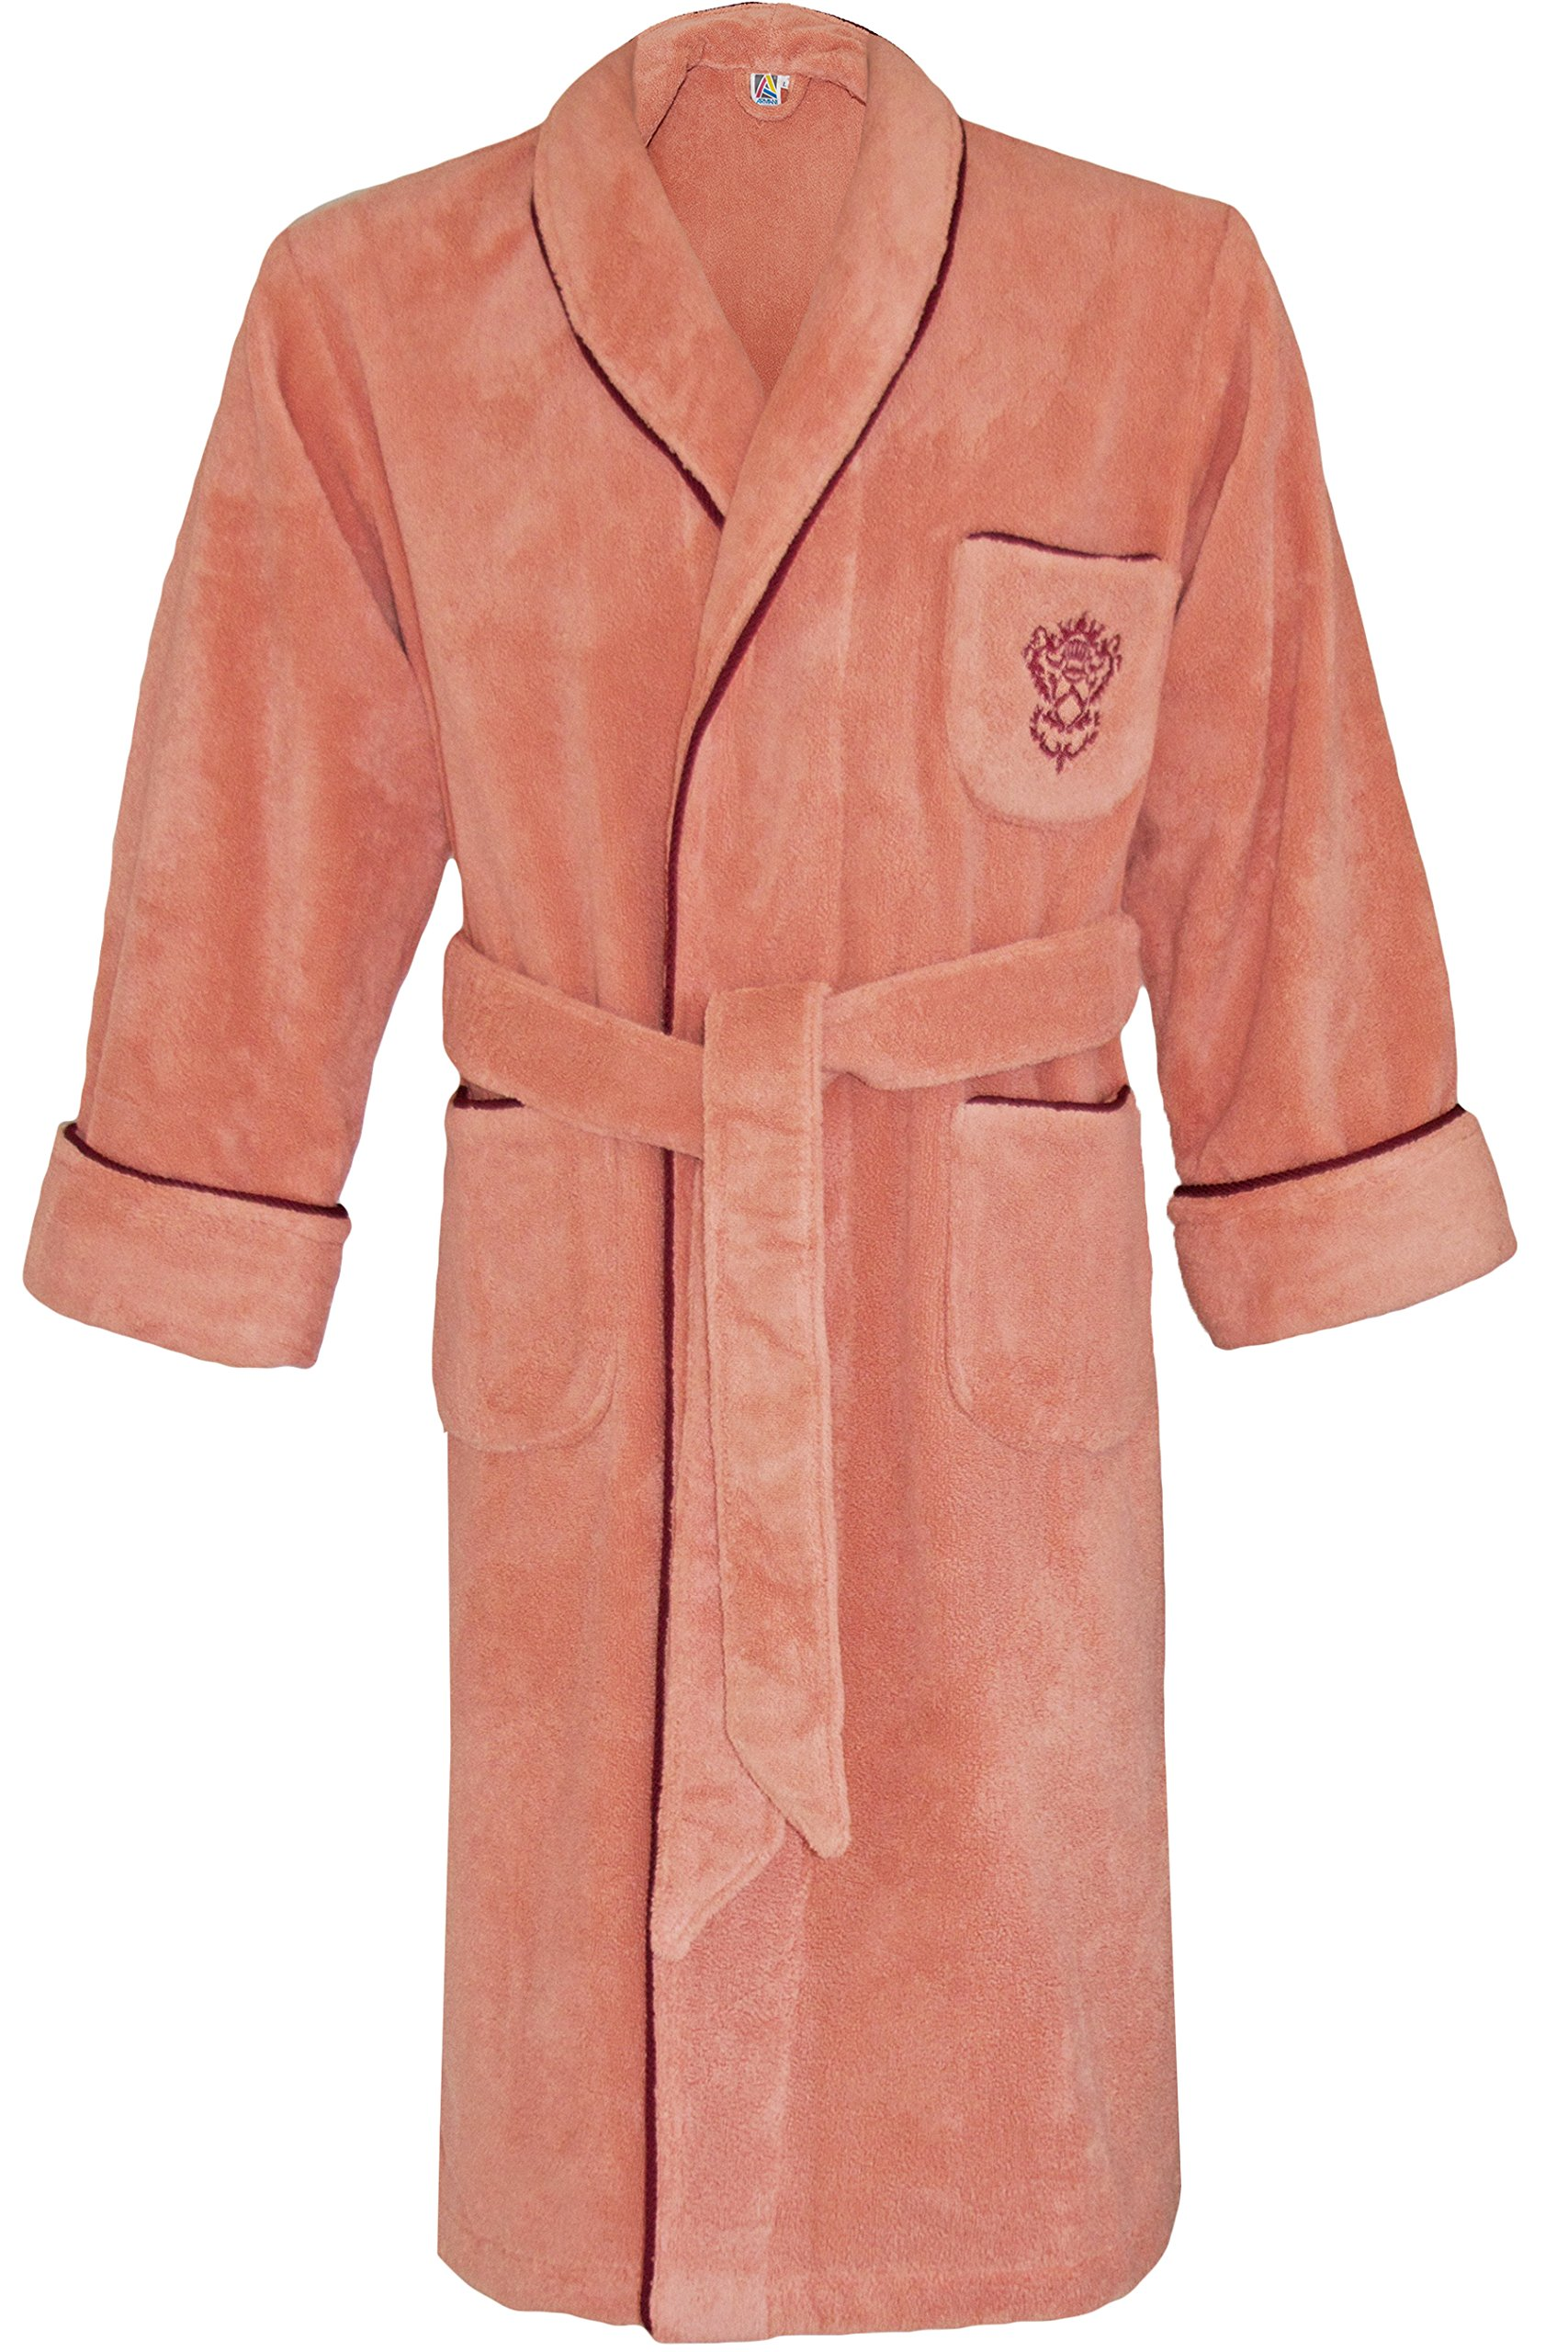 Armani International Rome Shawl Lounge Bath Robe Set Size Medium Coral by Armani International